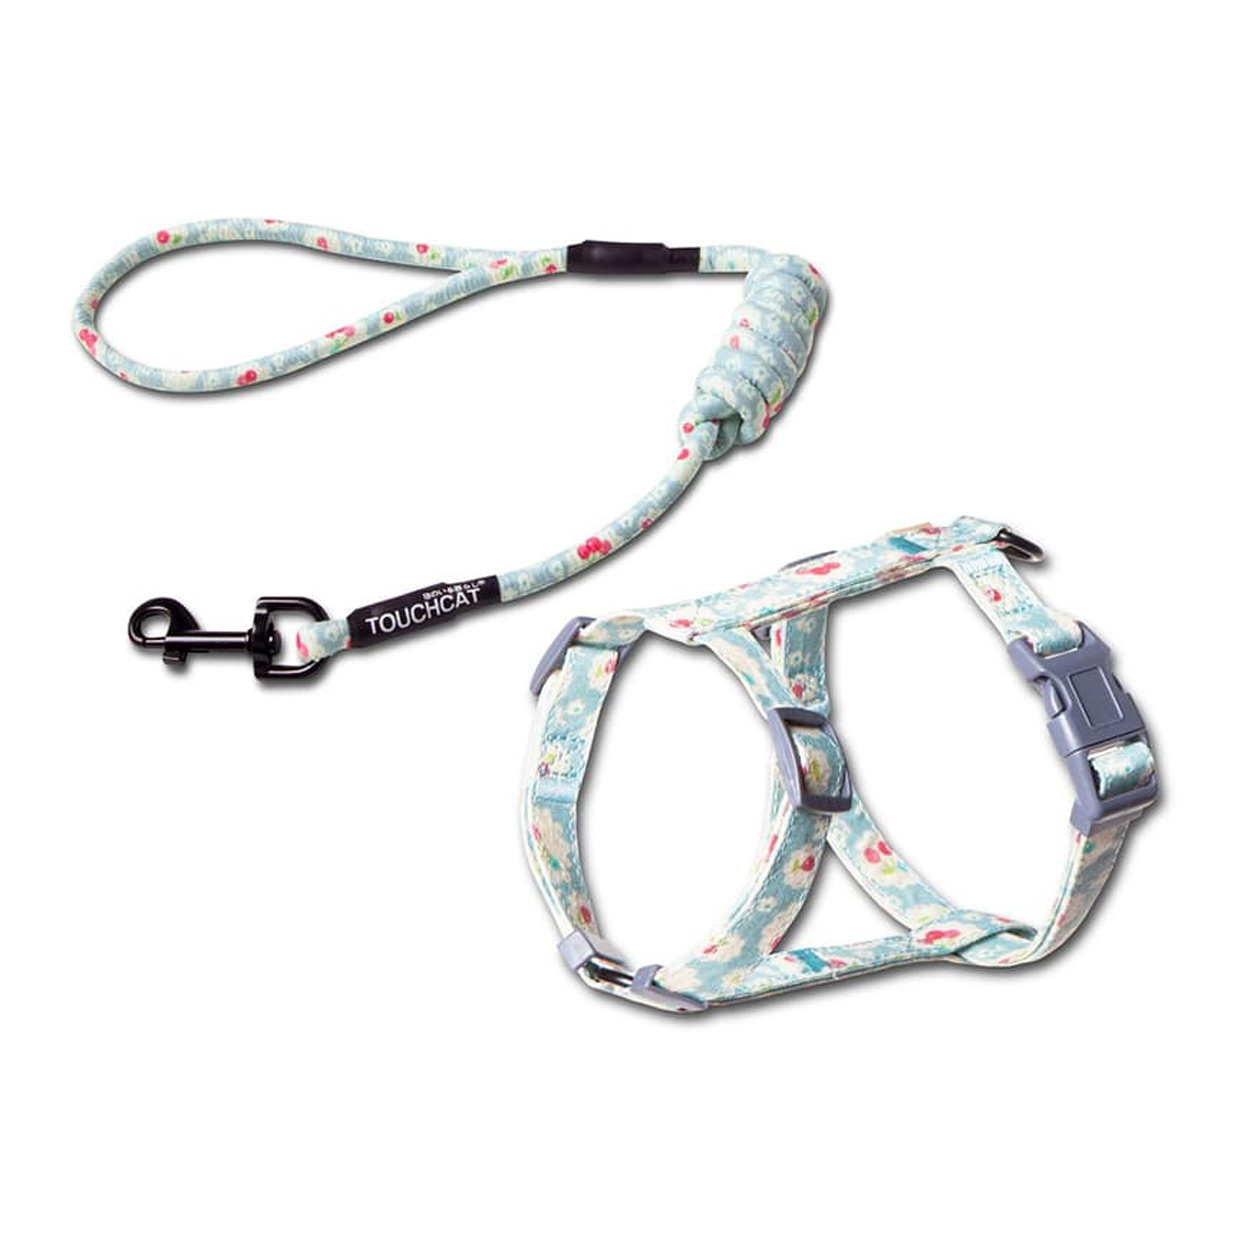 petkit-radi-claw-durable-Cable-cat-harness-and-leash-combo